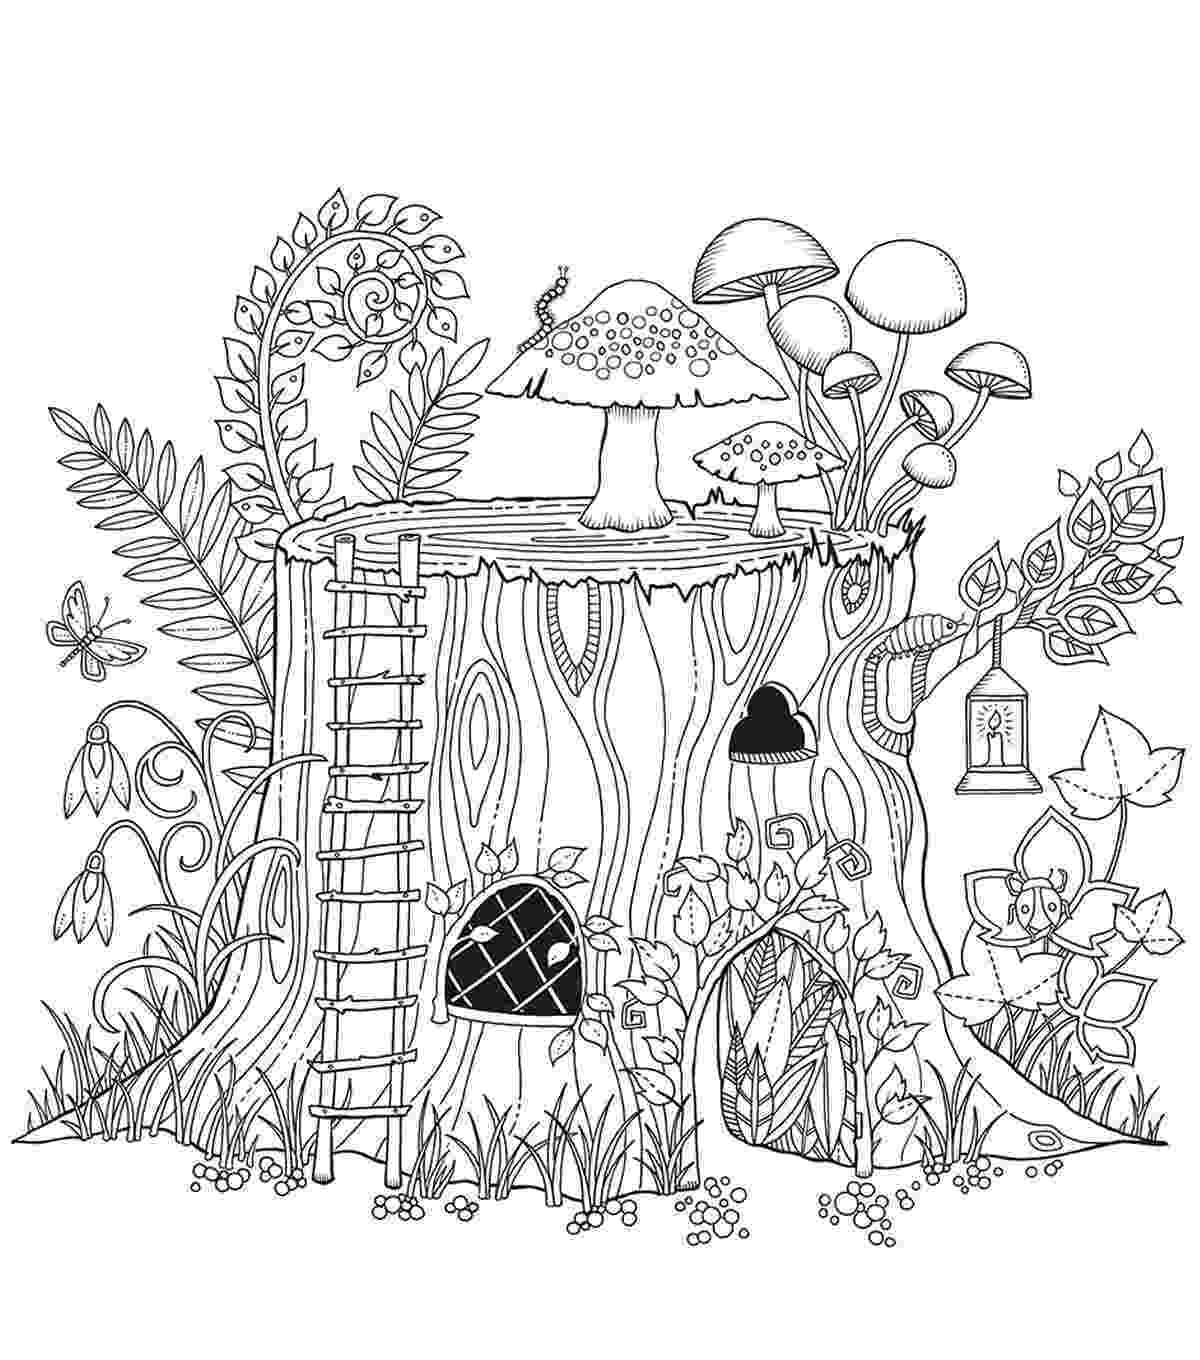 forest coloring sheets chronicle books enchanted forest coloring book joann joann sheets coloring forest